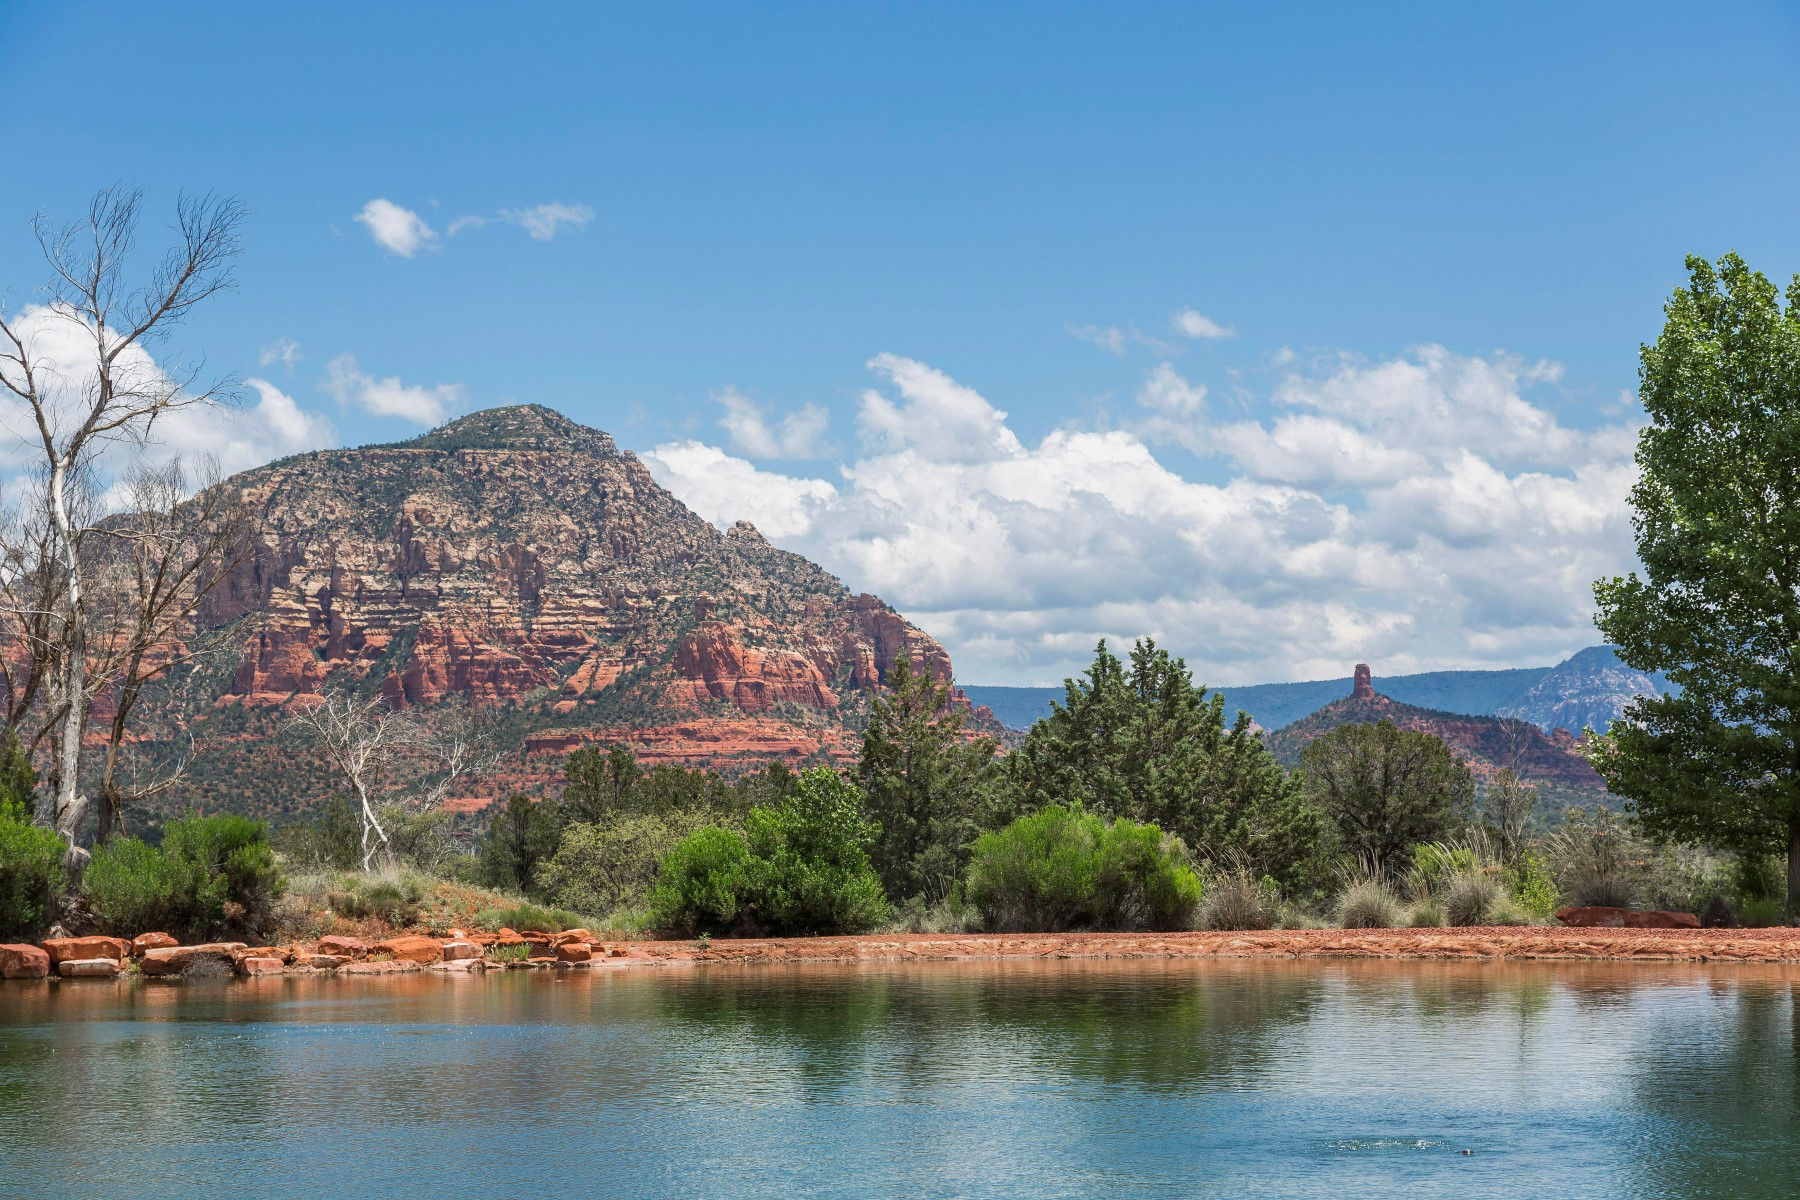 Земля для того Продажа на Aerie Lot 22 - Central 2.17 acre lot with views of Sedona's red rocks. 90 Altair AVE 22 Sedona, Аризона, 86336 Соединенные Штаты